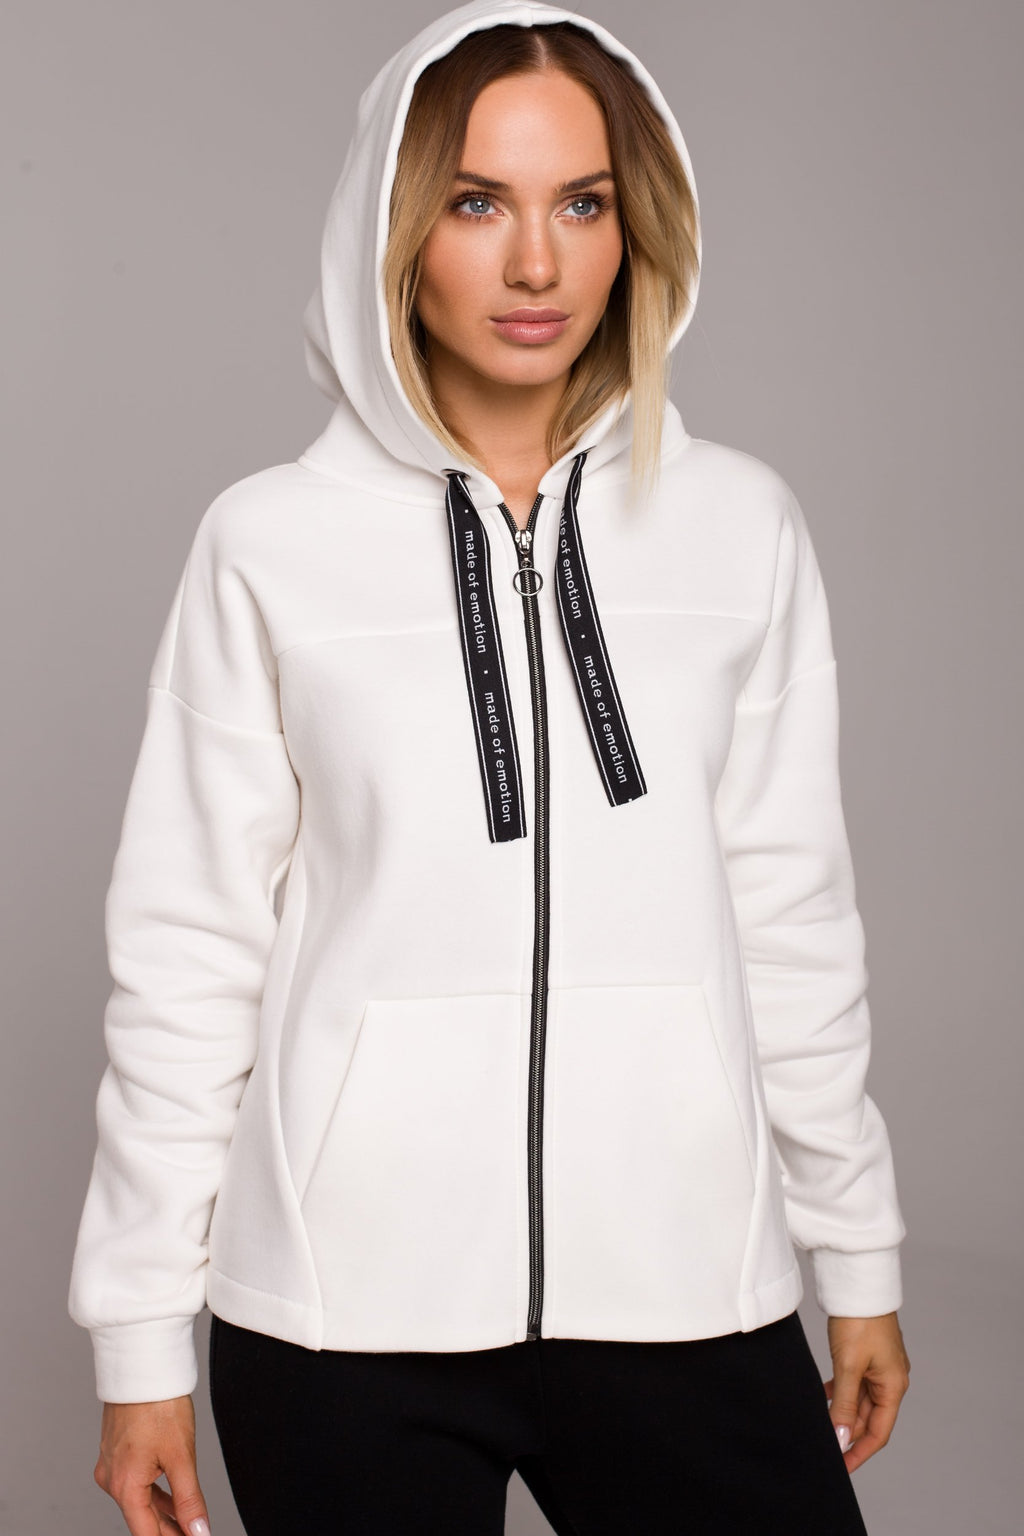 Ecru Hoodie With A Zip - So Chic Boutique